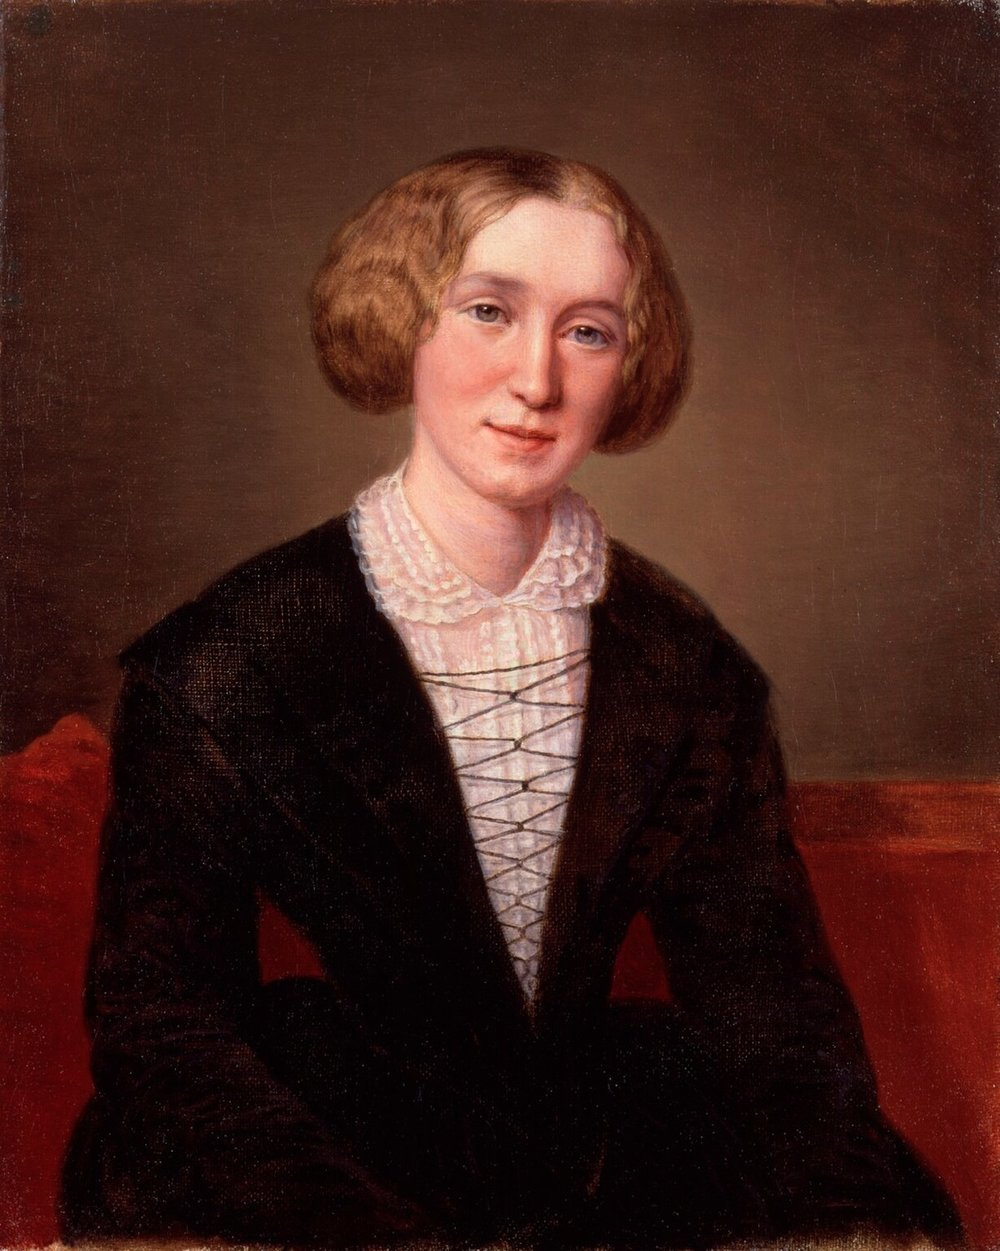 1200px-George_Eliot_at_30_by_François_D'Albert_Durade.jpg